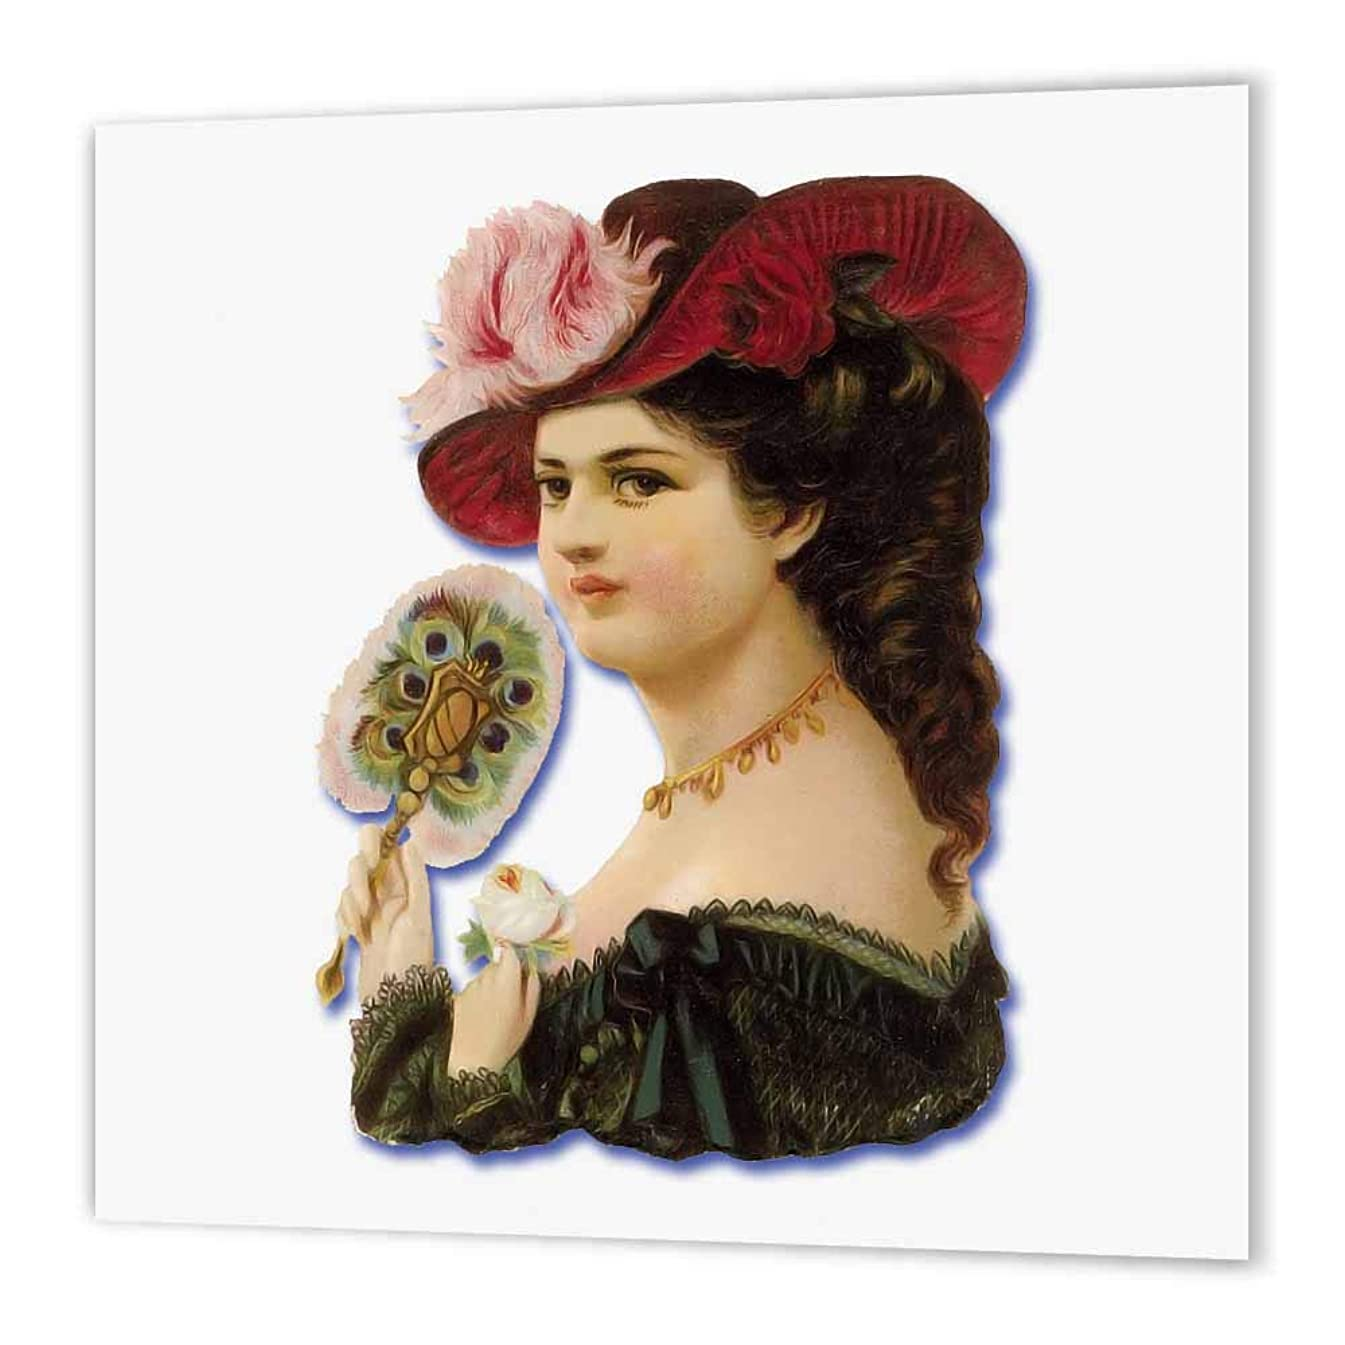 3dRose ht_175396_3 Beautiful Victorian Lady in a Feathered Hat Holding a Feather Fan-Iron on Heat Transfer Paper for White Material, 10 by 10-Inch